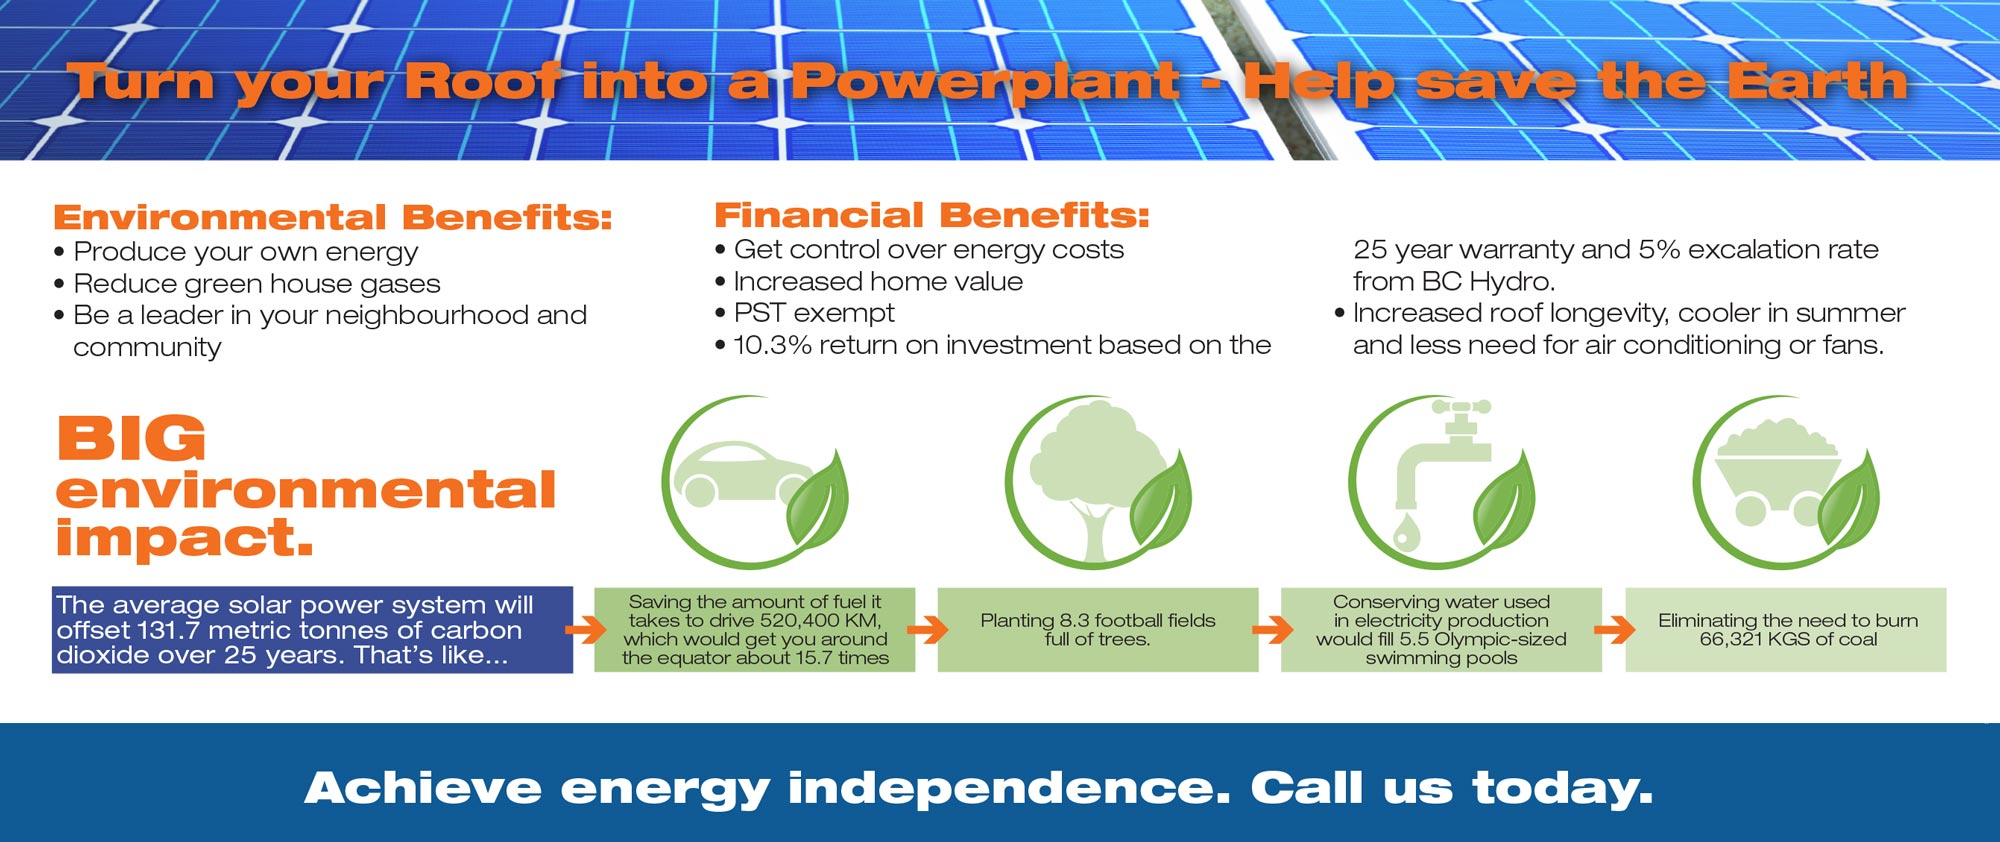 Financial & environmental benefits of a solar power system for your home